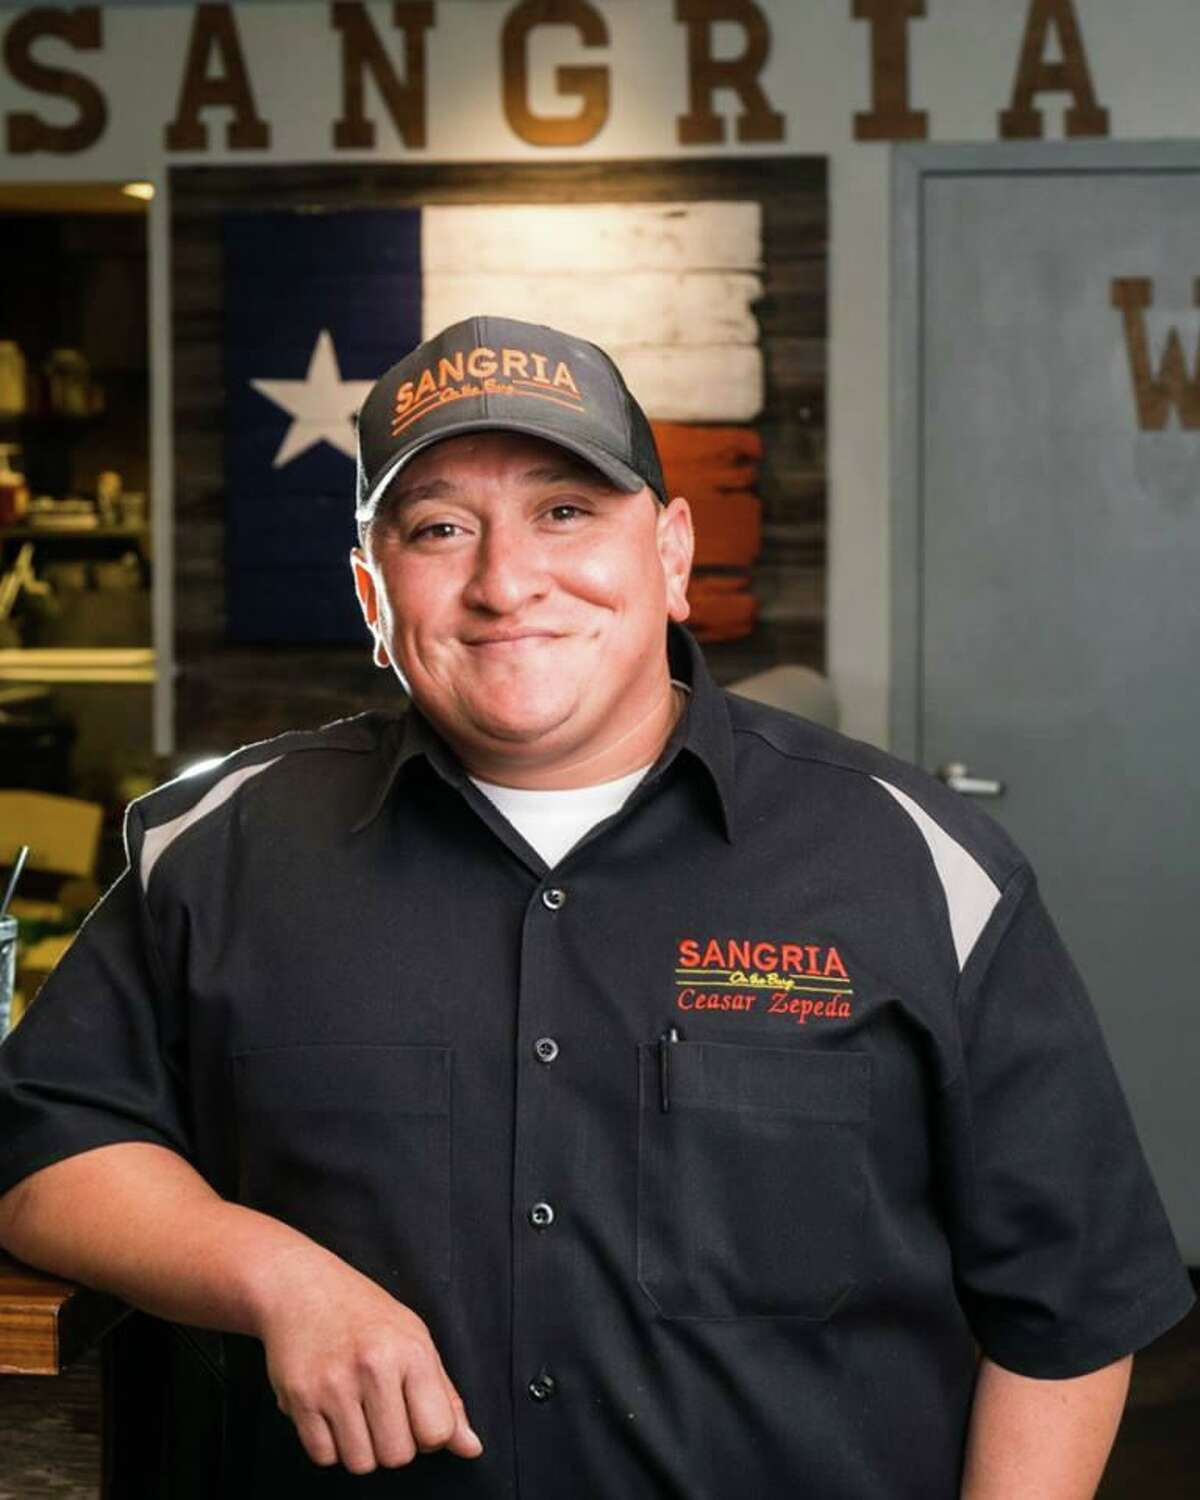 Chef Ceasar Zepeda of Sangria on the Burg and Alamo Biscuit Co. is expected to participate in the upcoming